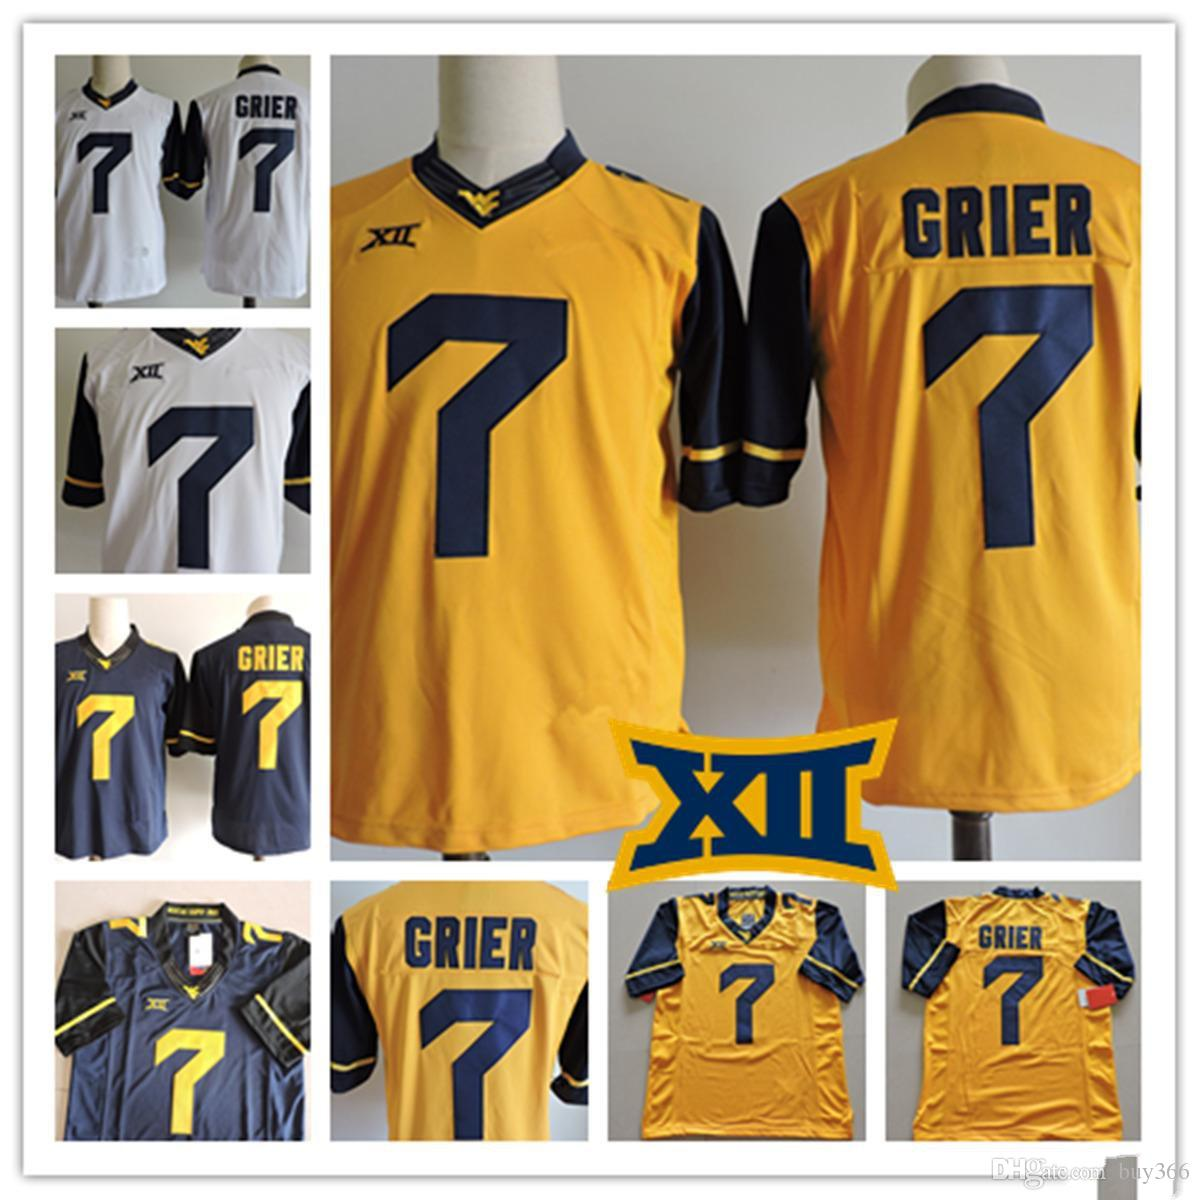 7 Will Grier NCAA Mens West Virginia Mountaineers Will Grier College  Football Jerseys Stithced XII West Virginia Mountaineers Jersey S 3XL. UK  2019 From ... 8f0b53c43